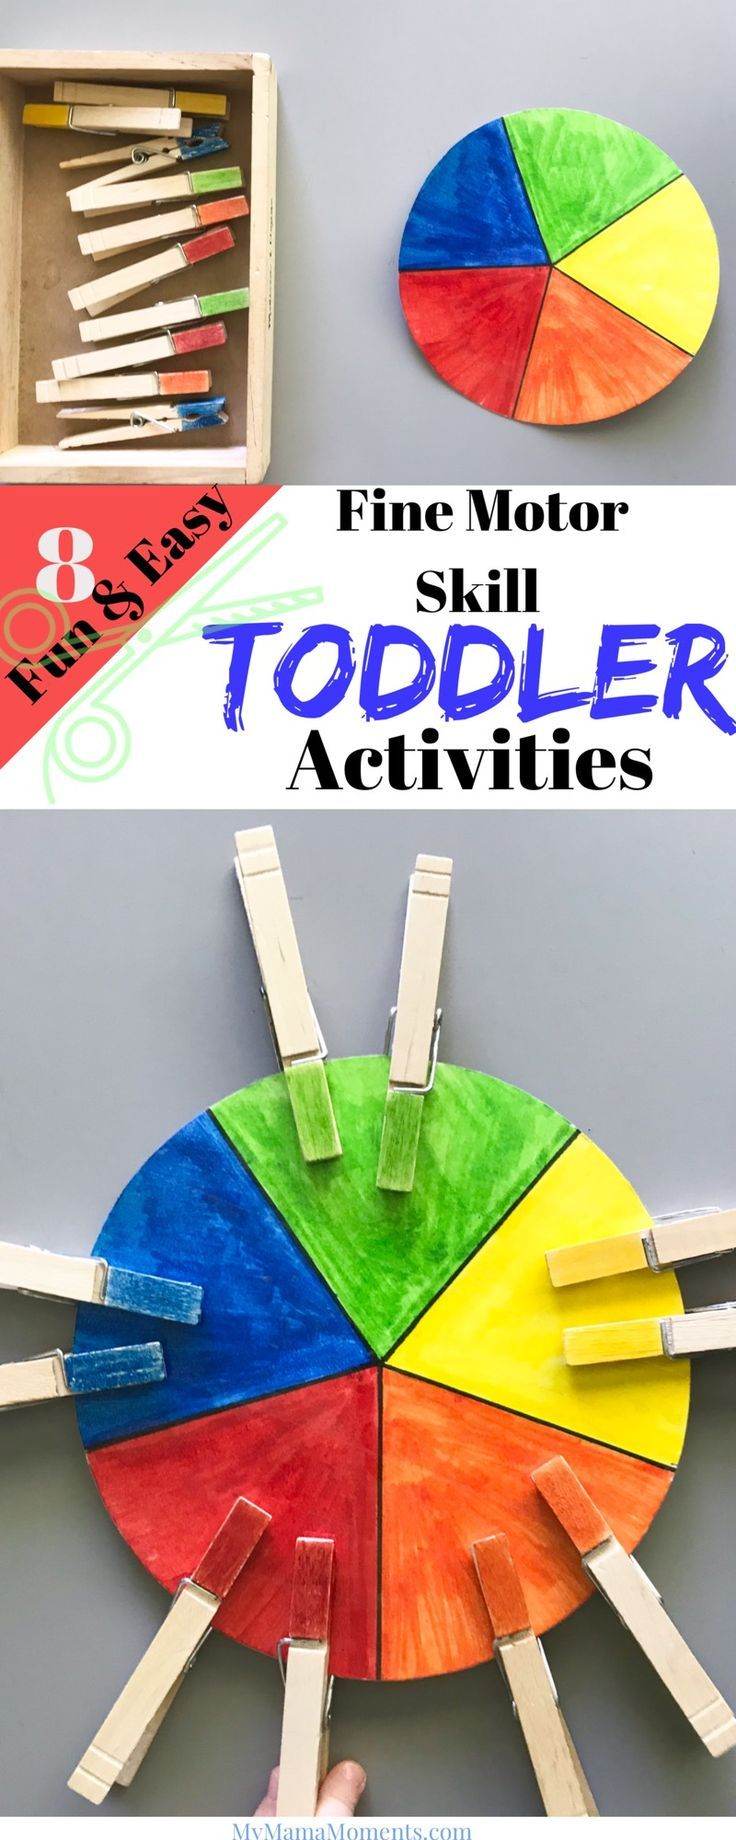 8 Fun & Easy Fine Motor Skill Activities for Toddlers! A BONUS Threading Activity Step-by-Step Tutorial! Make learning fun one activity at a time! #toddleractivites #finemotorskill #motorskillactivities #toddler #DIYactivities #craftymom